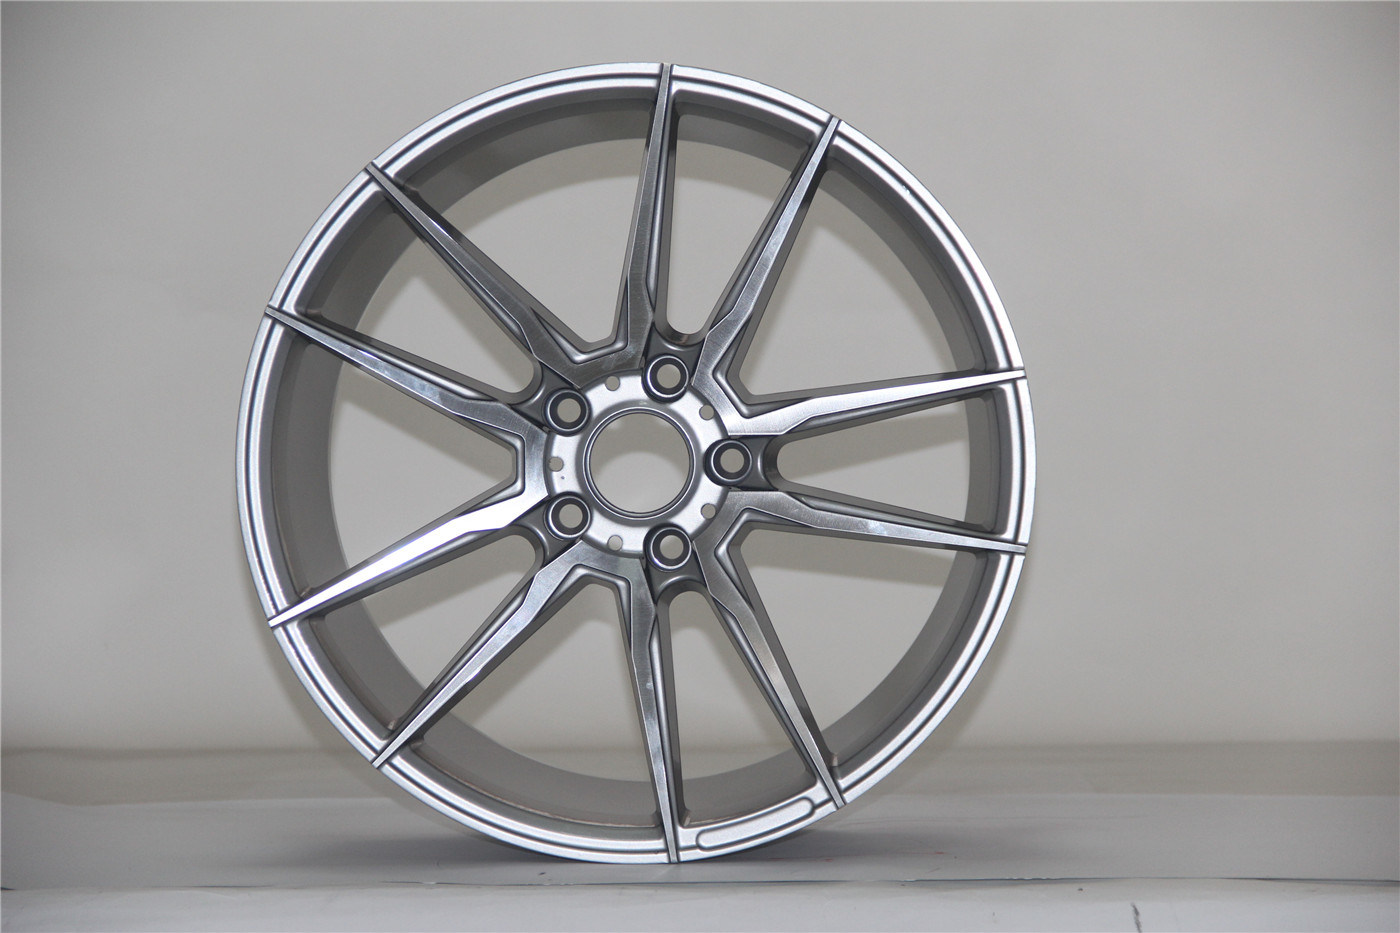 18X818X9 Car Alloy Wheels Aluminum Wheels Alloy Rims Auto Aprts Racing Wheels Aftermarket Wheels